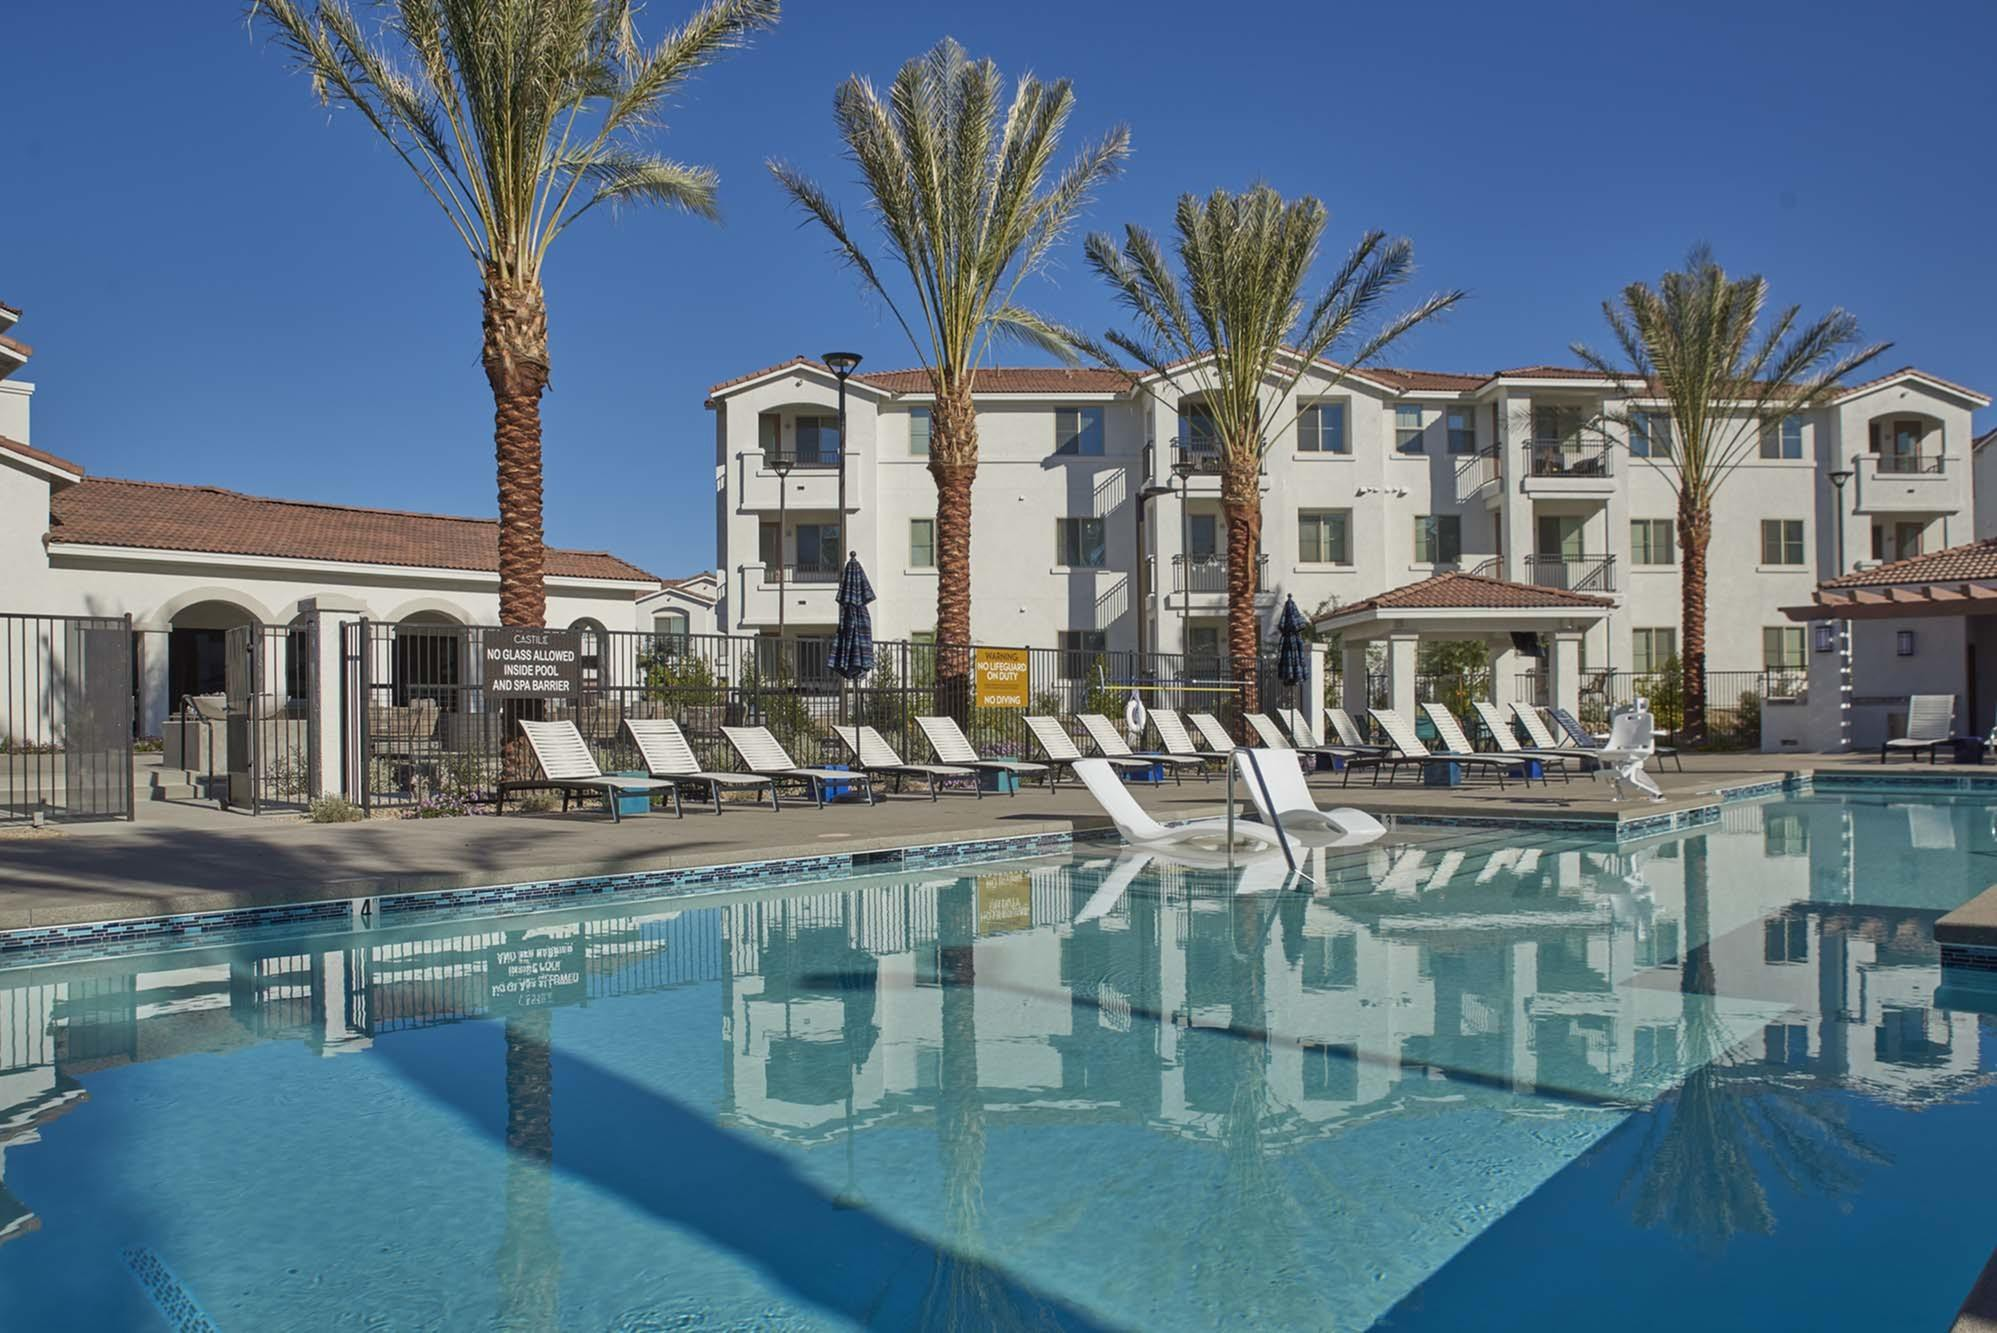 170 Apartments In Las Vegas Nv Reviews And Ranking